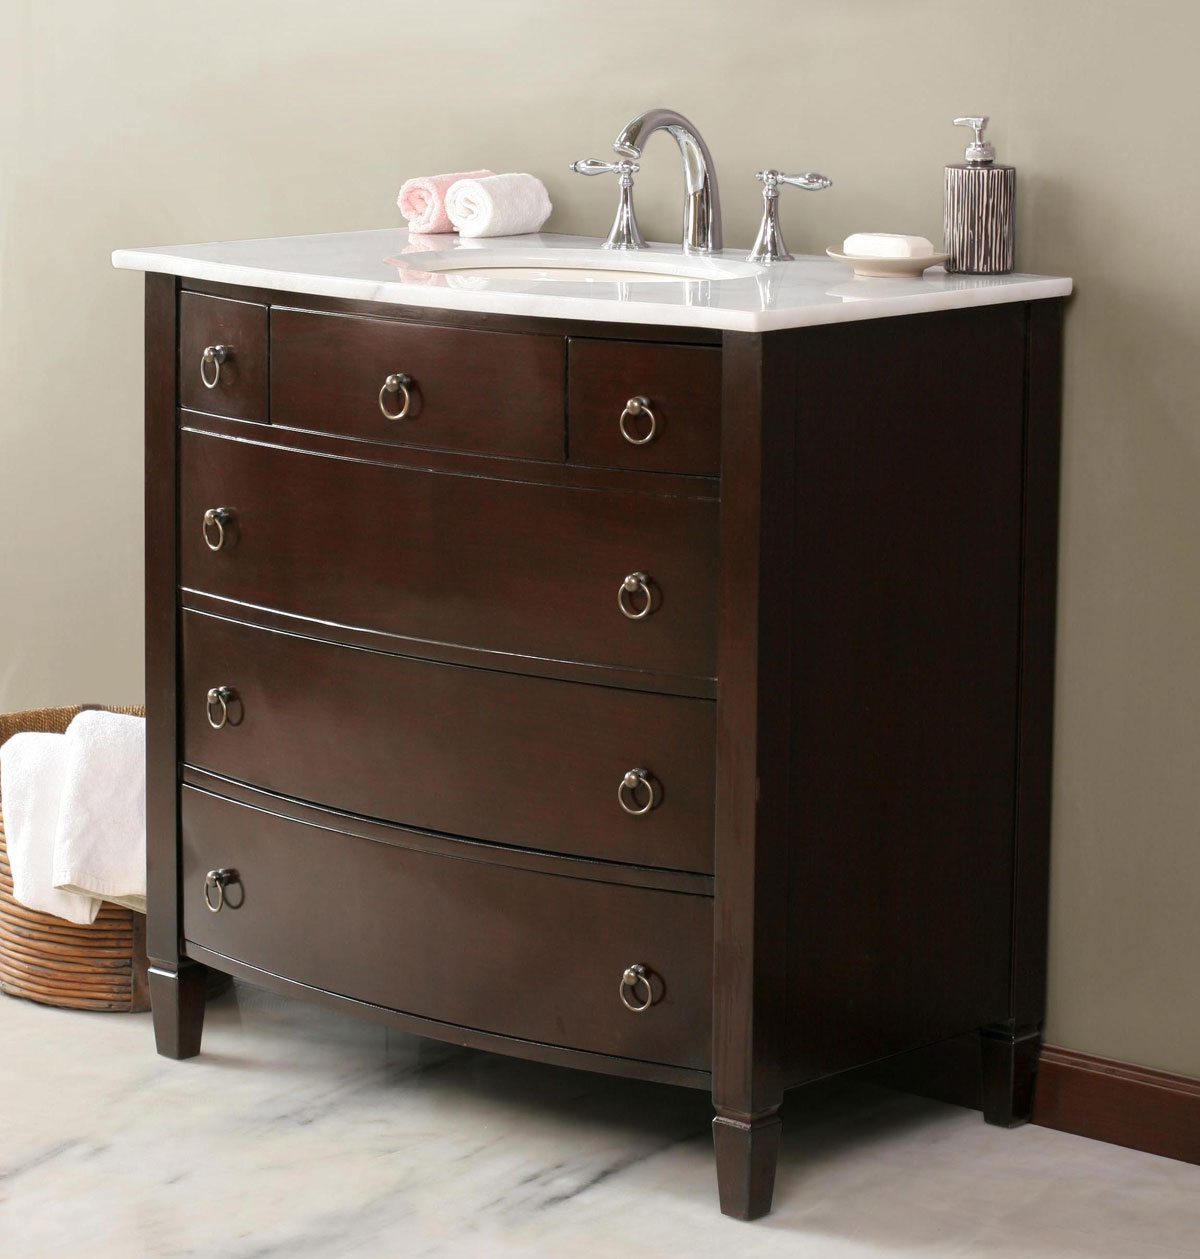 Permalink to Small Bath Vanity With Drawers